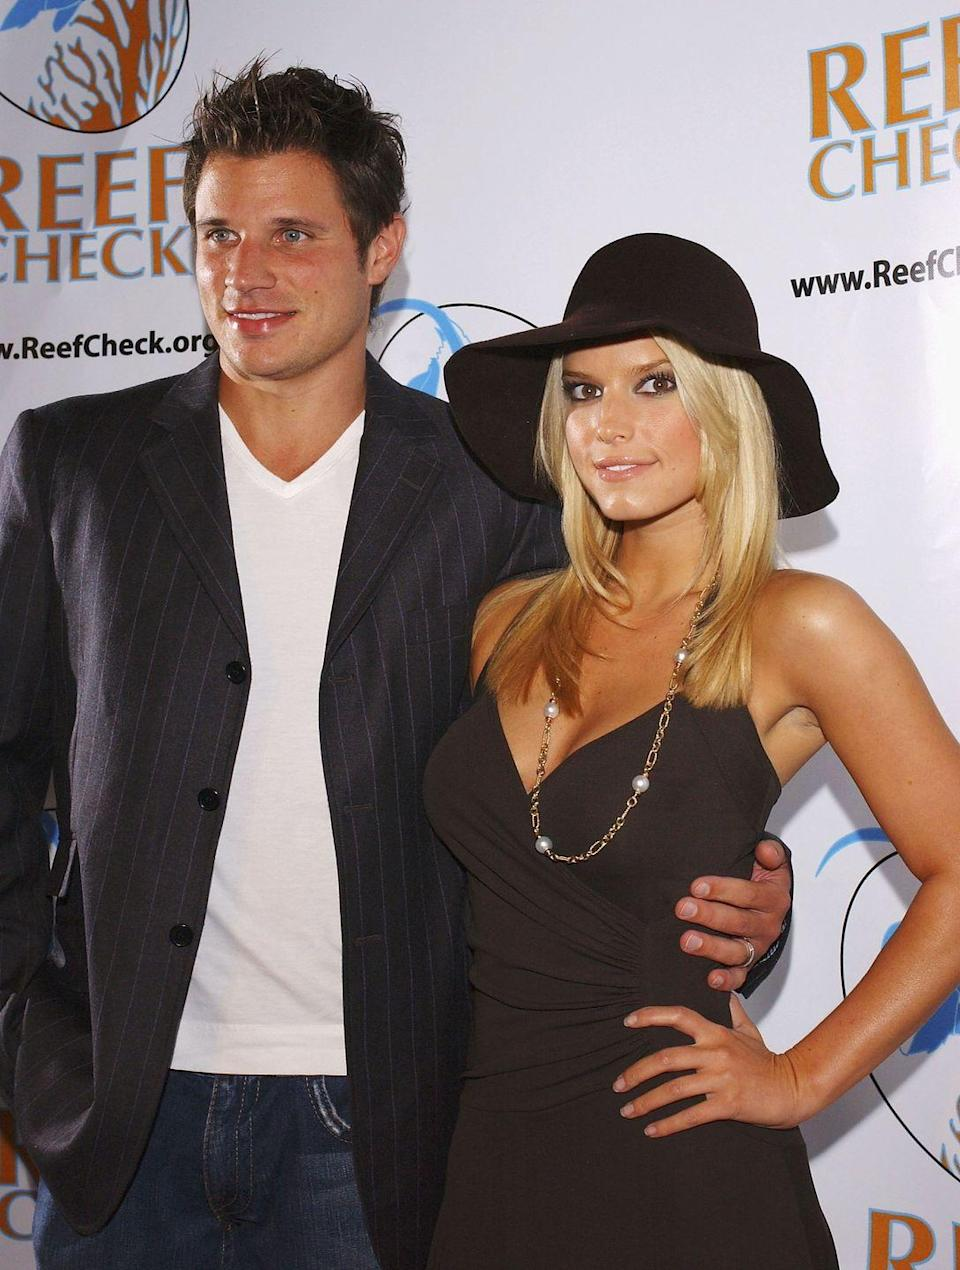 """<p>Jessica Simpson and Nick Lachey <a href=""""http://www.eonline.com/news/866236/why-jessica-simpson-and-nick-lachey-ever-married-each-other-in-the-first-place-and-then-did-a-reality-show"""" rel=""""nofollow noopener"""" target=""""_blank"""" data-ylk=""""slk:tied the knot"""" class=""""link rapid-noclick-resp"""">tied the knot</a> on October 26, 2002, which spawned the reality show <em>Newlyweds: Nick and Jessica</em>. The show became a pop culture phenomenon, but the pair split in 2006. </p>"""